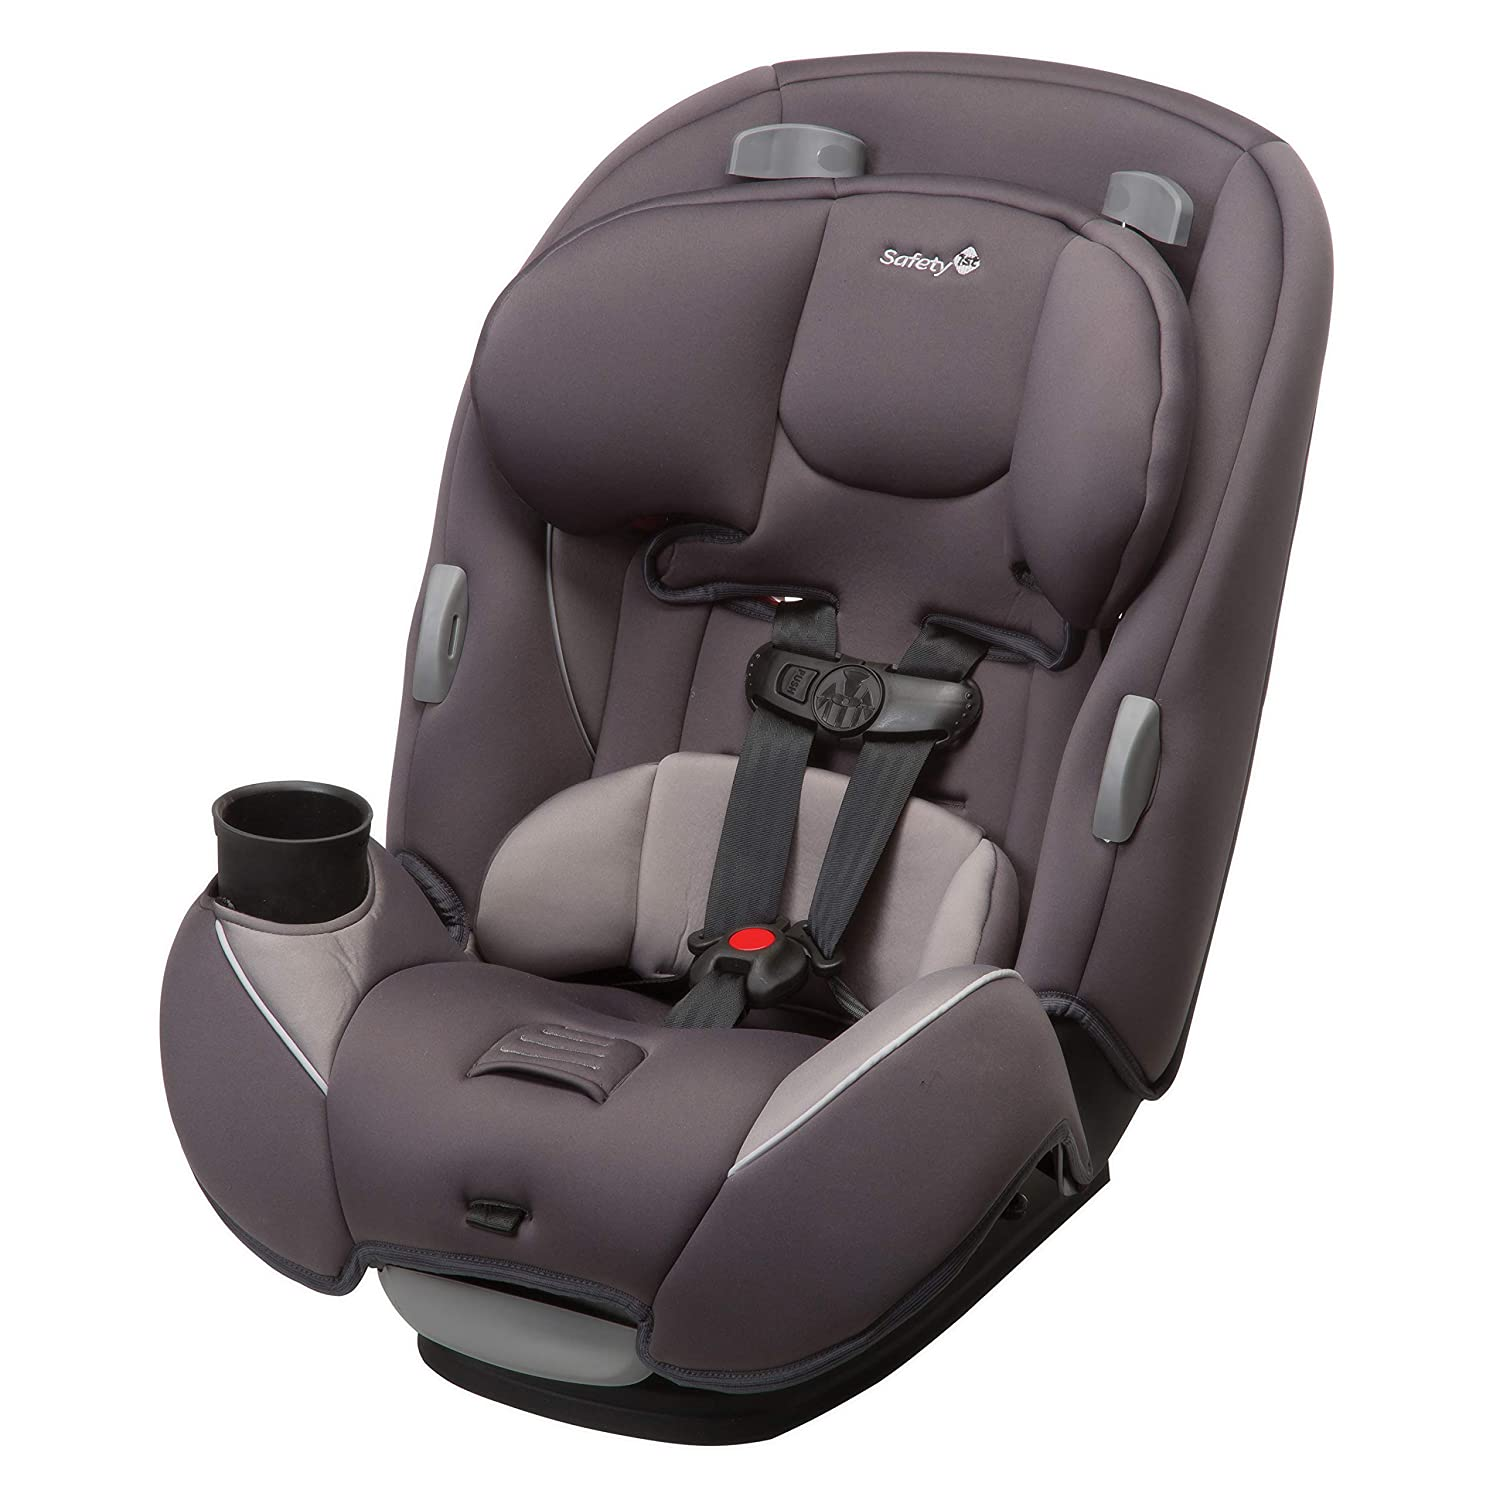 Safety 1st Continuum 3-in-1 Car Seat, Chili Pepper CC137DSL